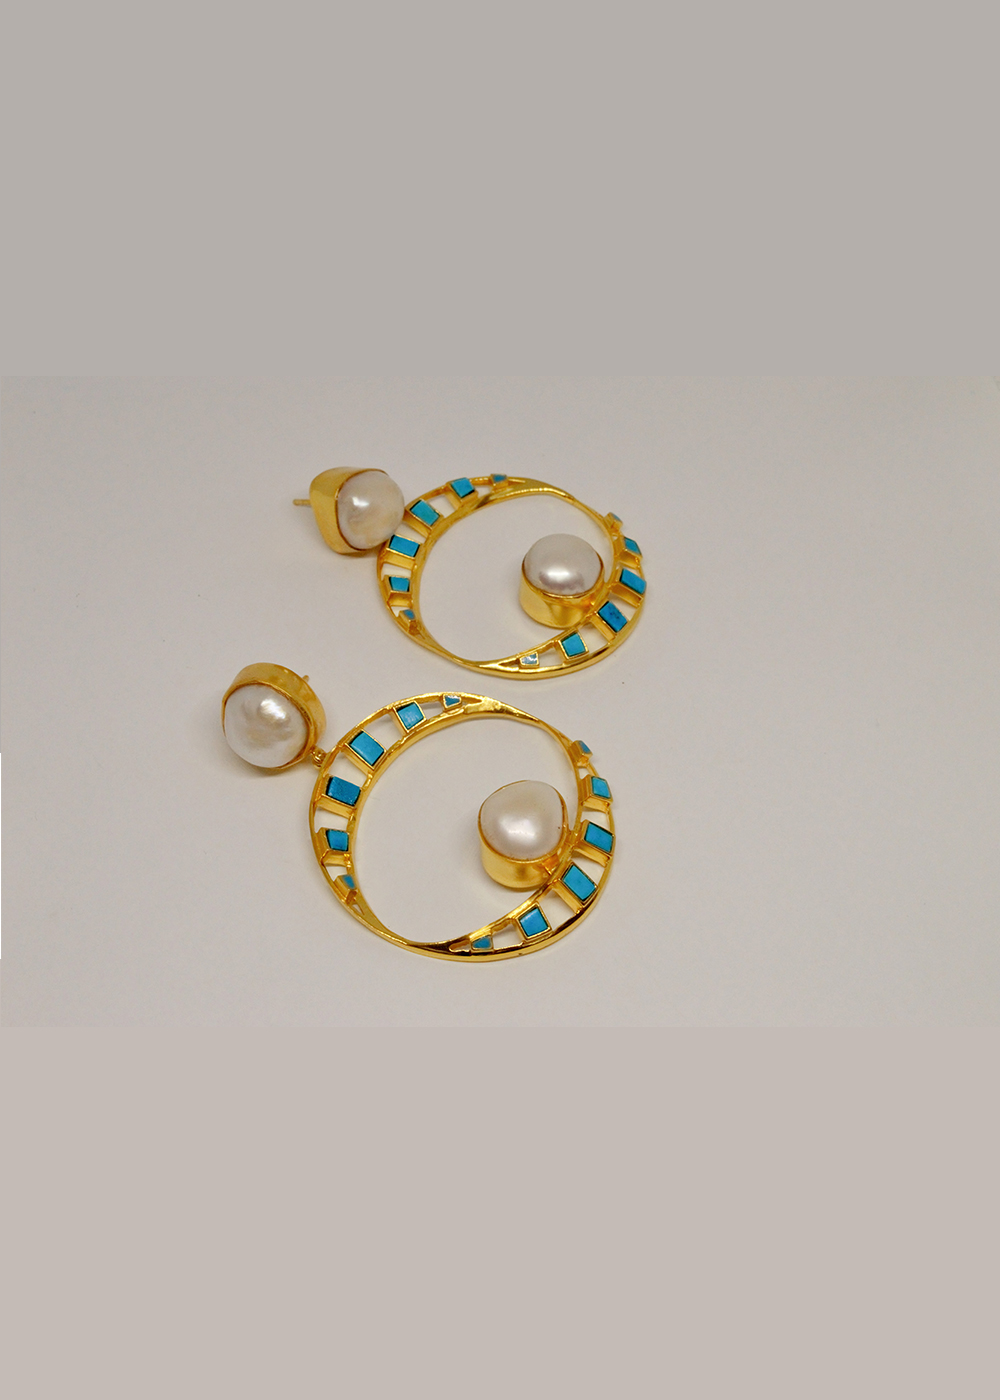 Earrings Pearls And Turquoise